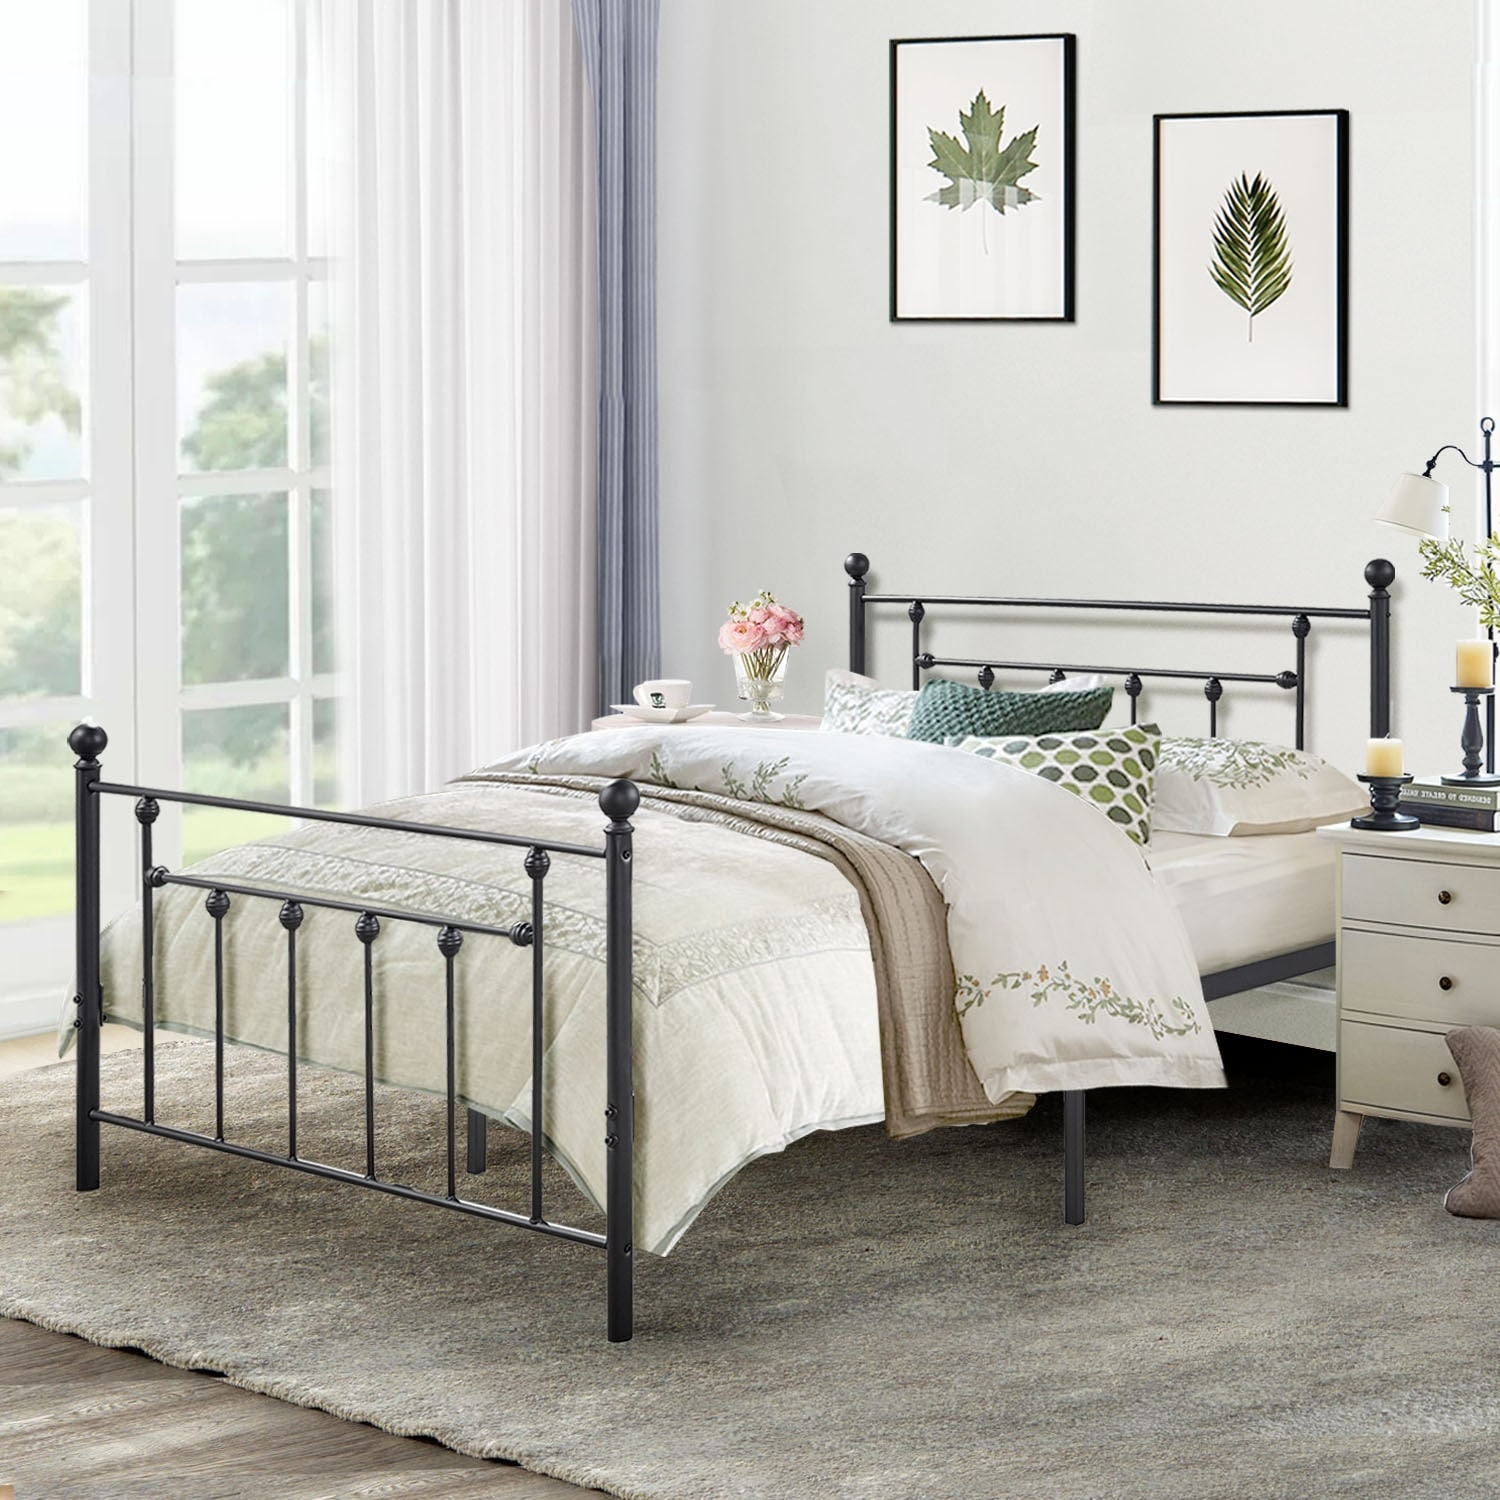 Image of: Shop Black Friday Deals On Vecelo Metal Beds Victorian Metal Platform Bed Frames With Headboard And Footboard Twin Full Queen 3 Options Overstock 20489039